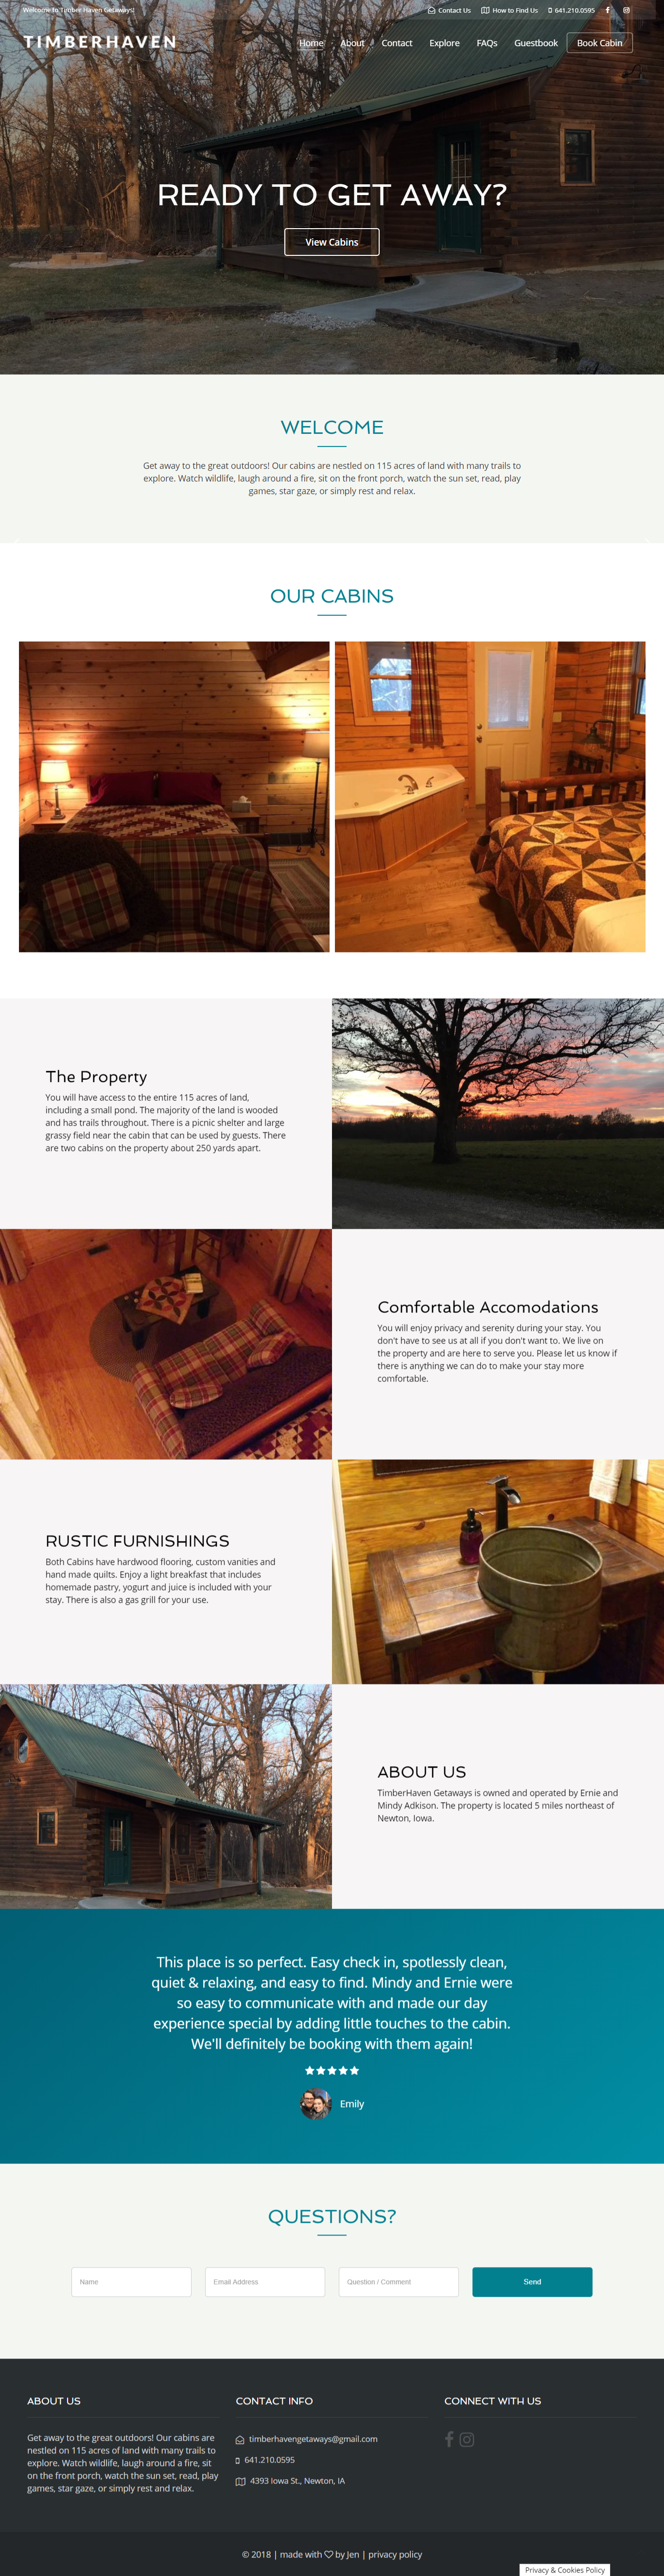 WordPress Website Design | Cabin Rental Website | Timber Haven Getaways | Jennifer-Franklin.com